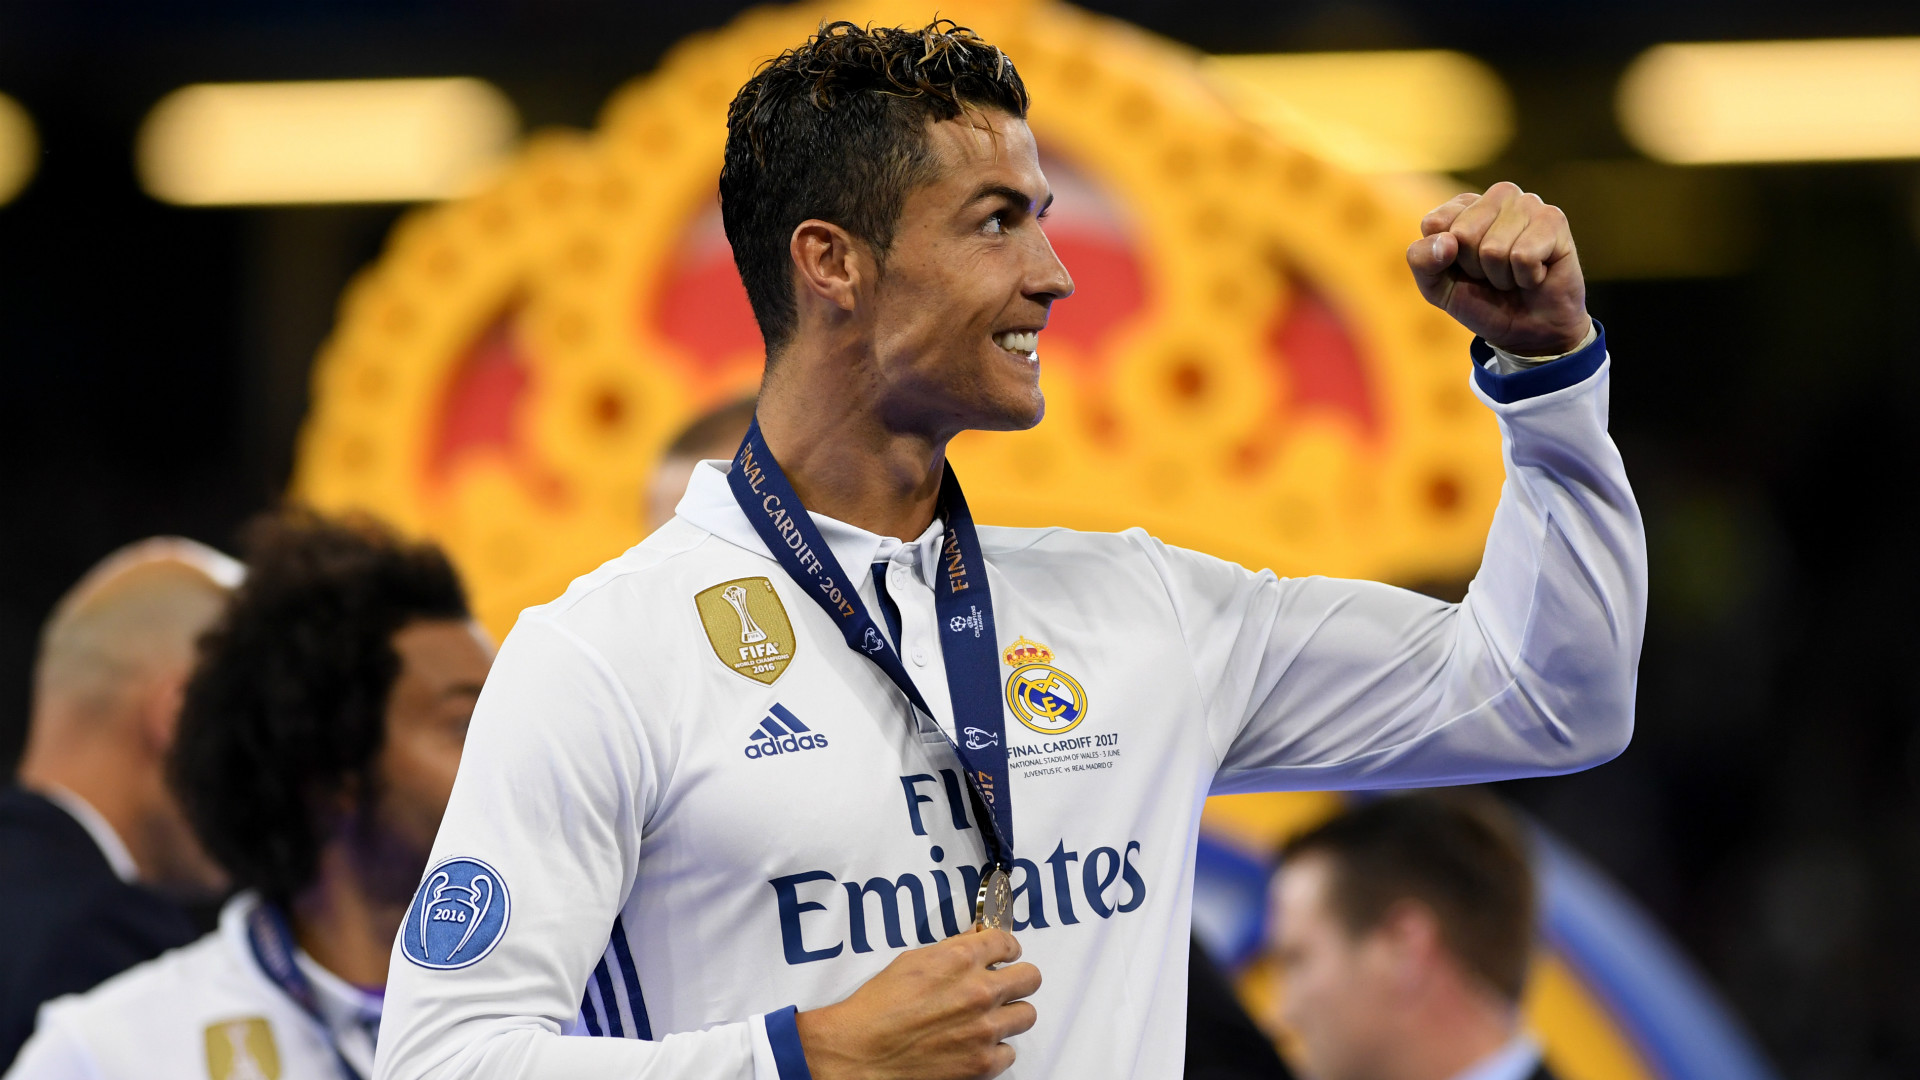 Fifa 18 Xbox One Ps4 Release Dates Cost Pre Order And Complete Fifa17 Standard Playstation 4 Cristiano Ronaldo